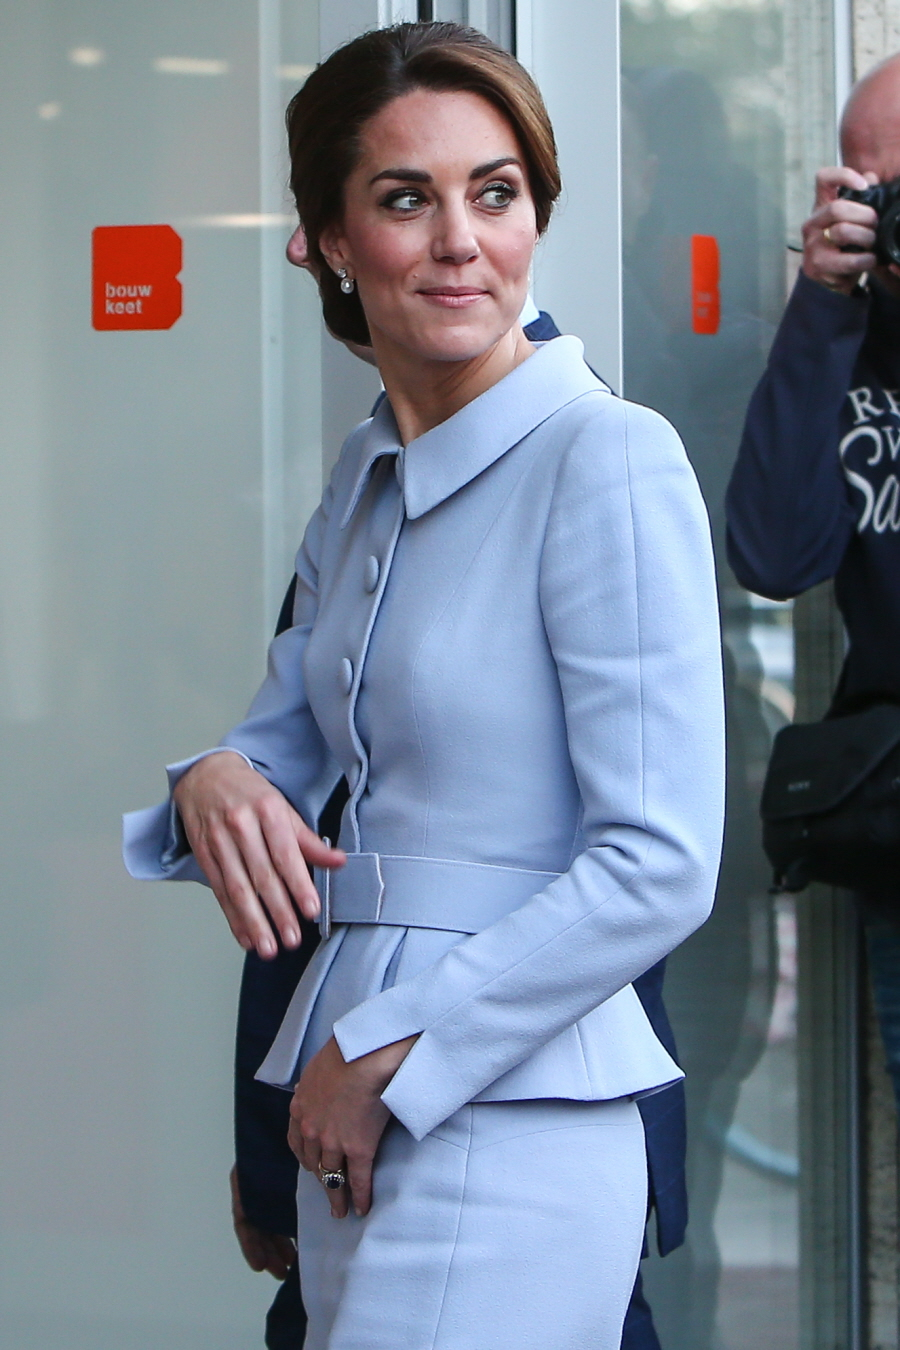 wenn29664762  bitchy | DM: Does Duchess Kate clutch her crotch to keep away from shaking arms? wenn29664762